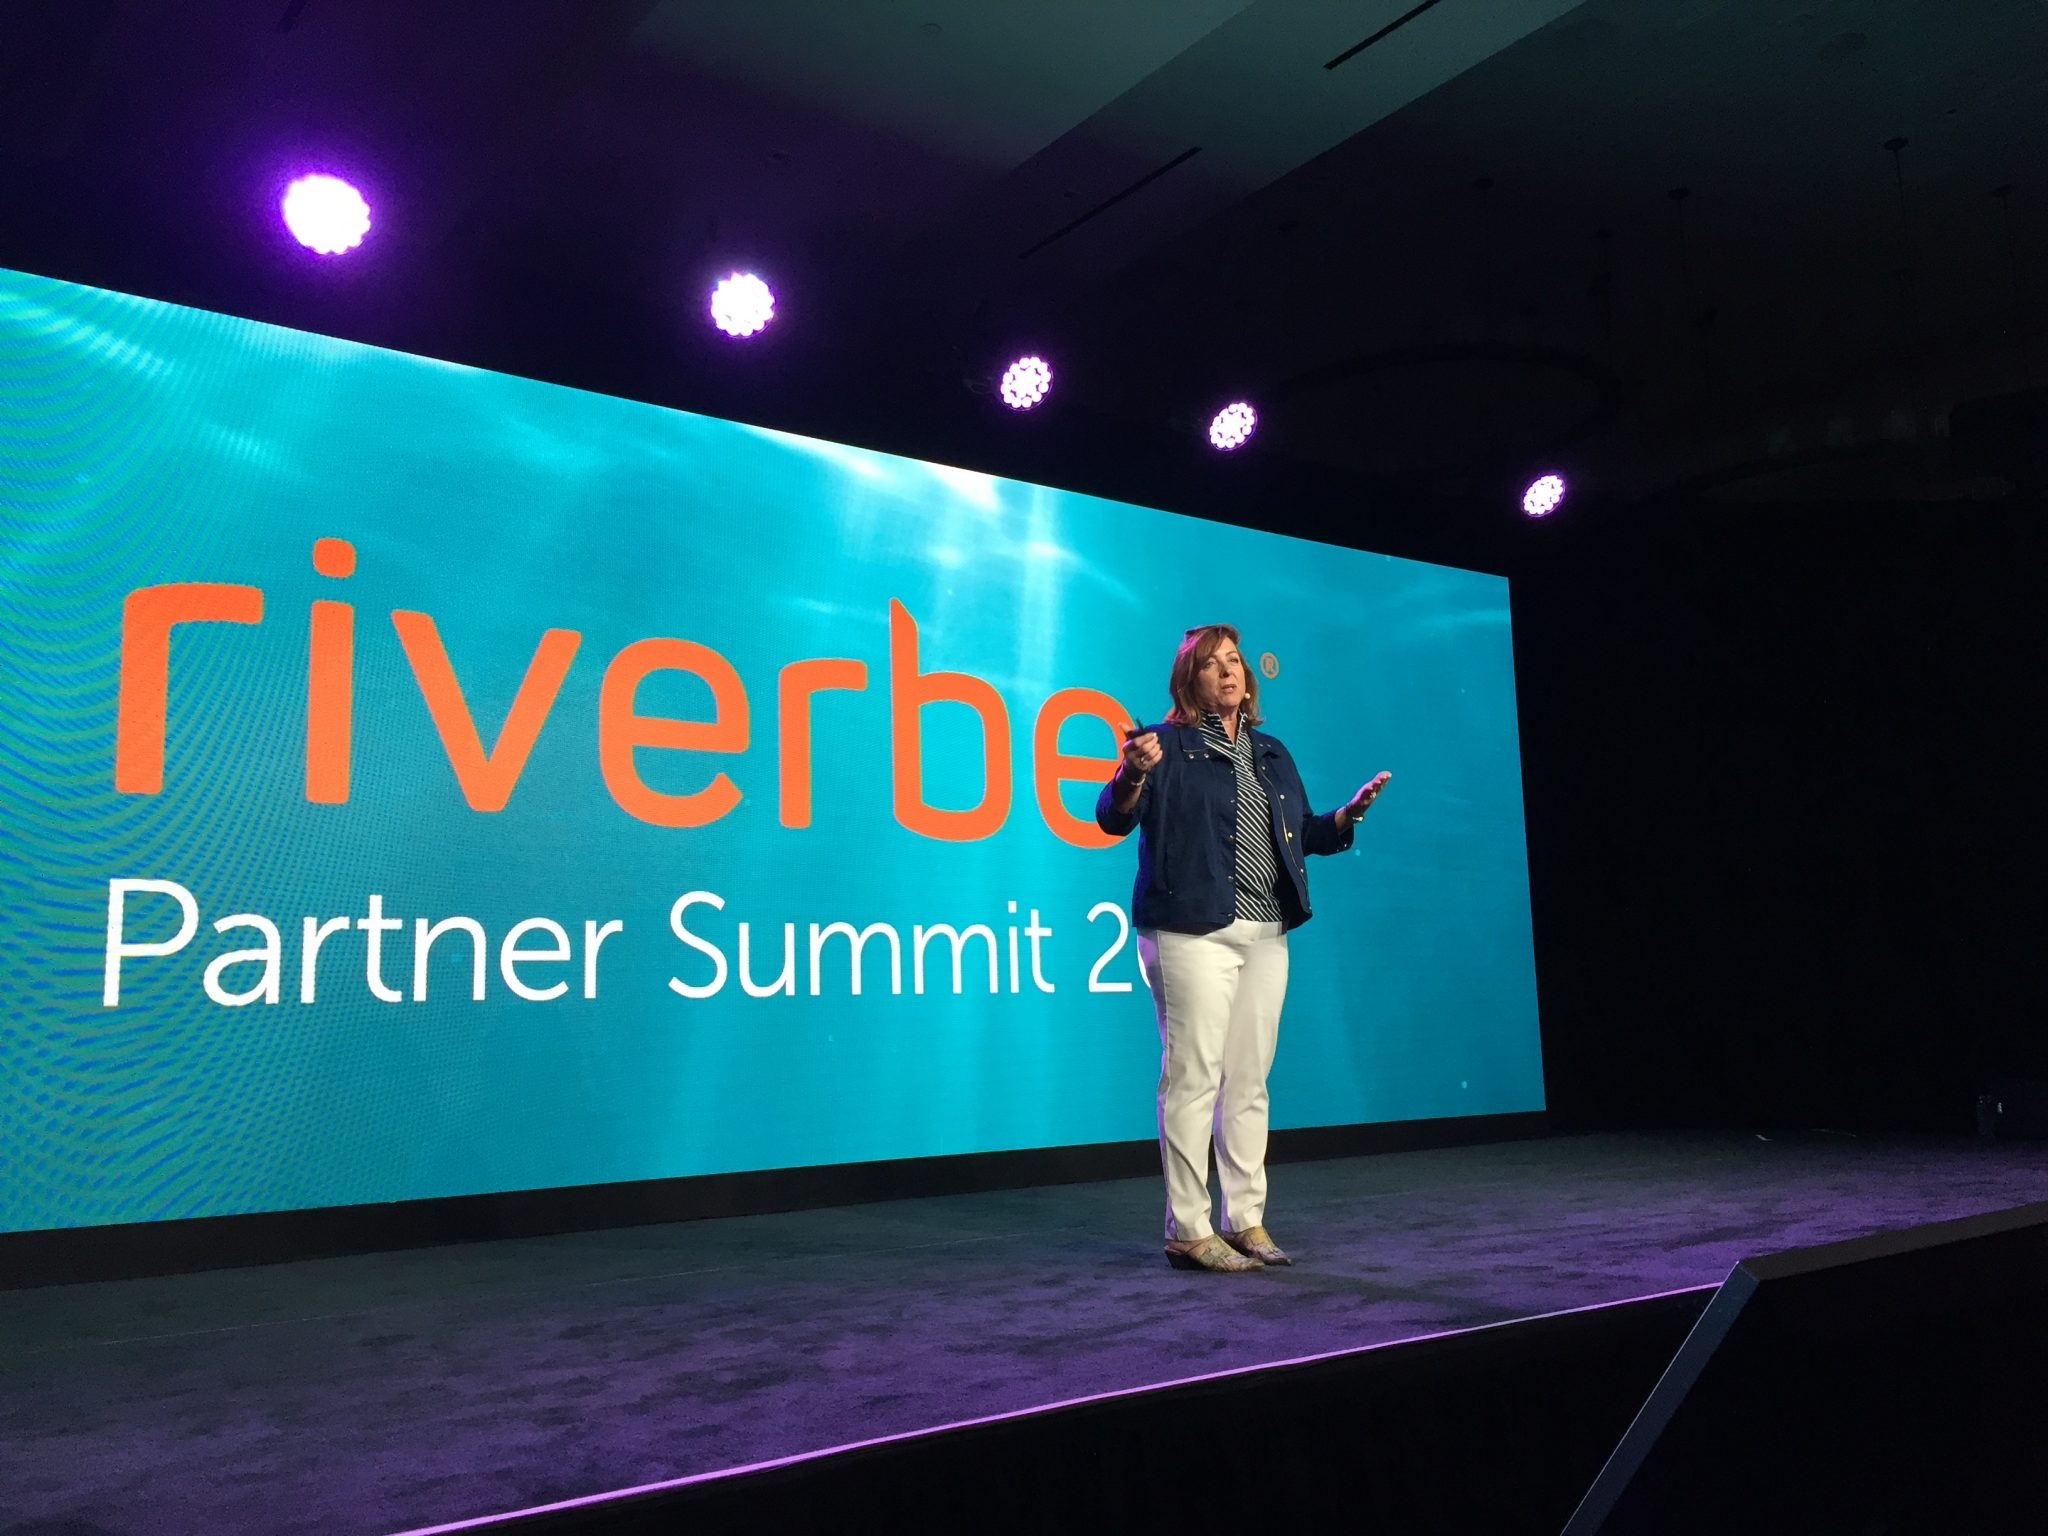 Riverbed's Bridget Bisnette